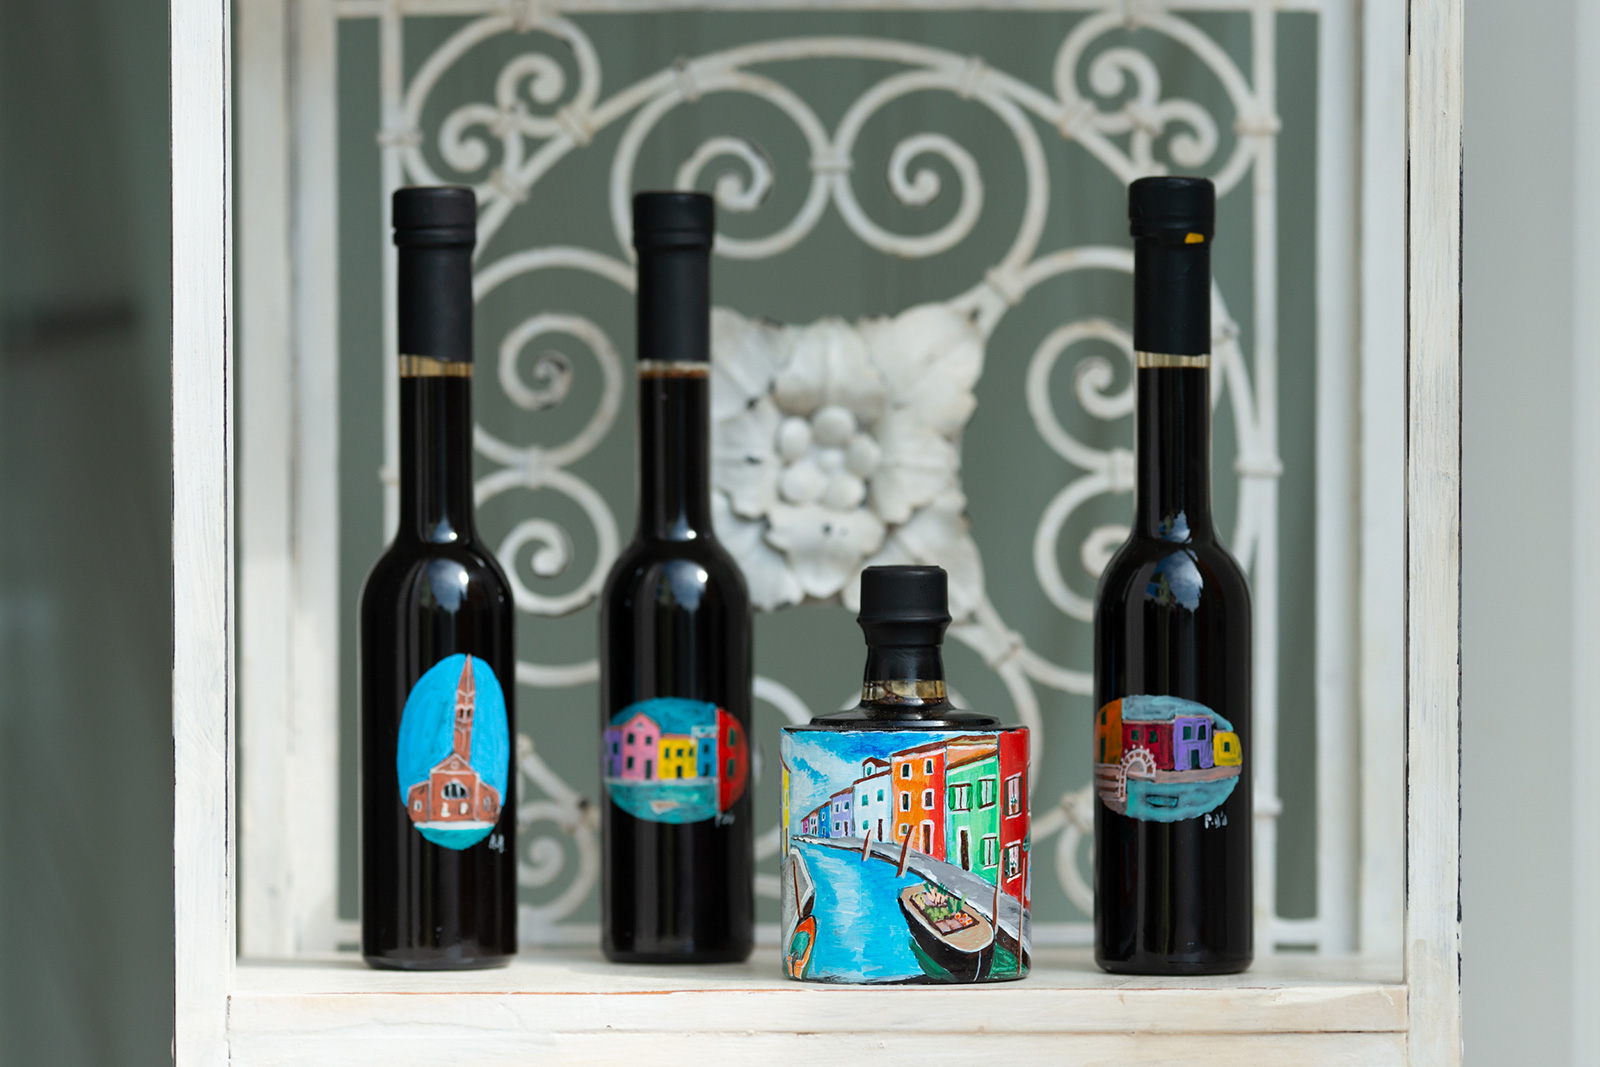 Aceto Balsamico AB